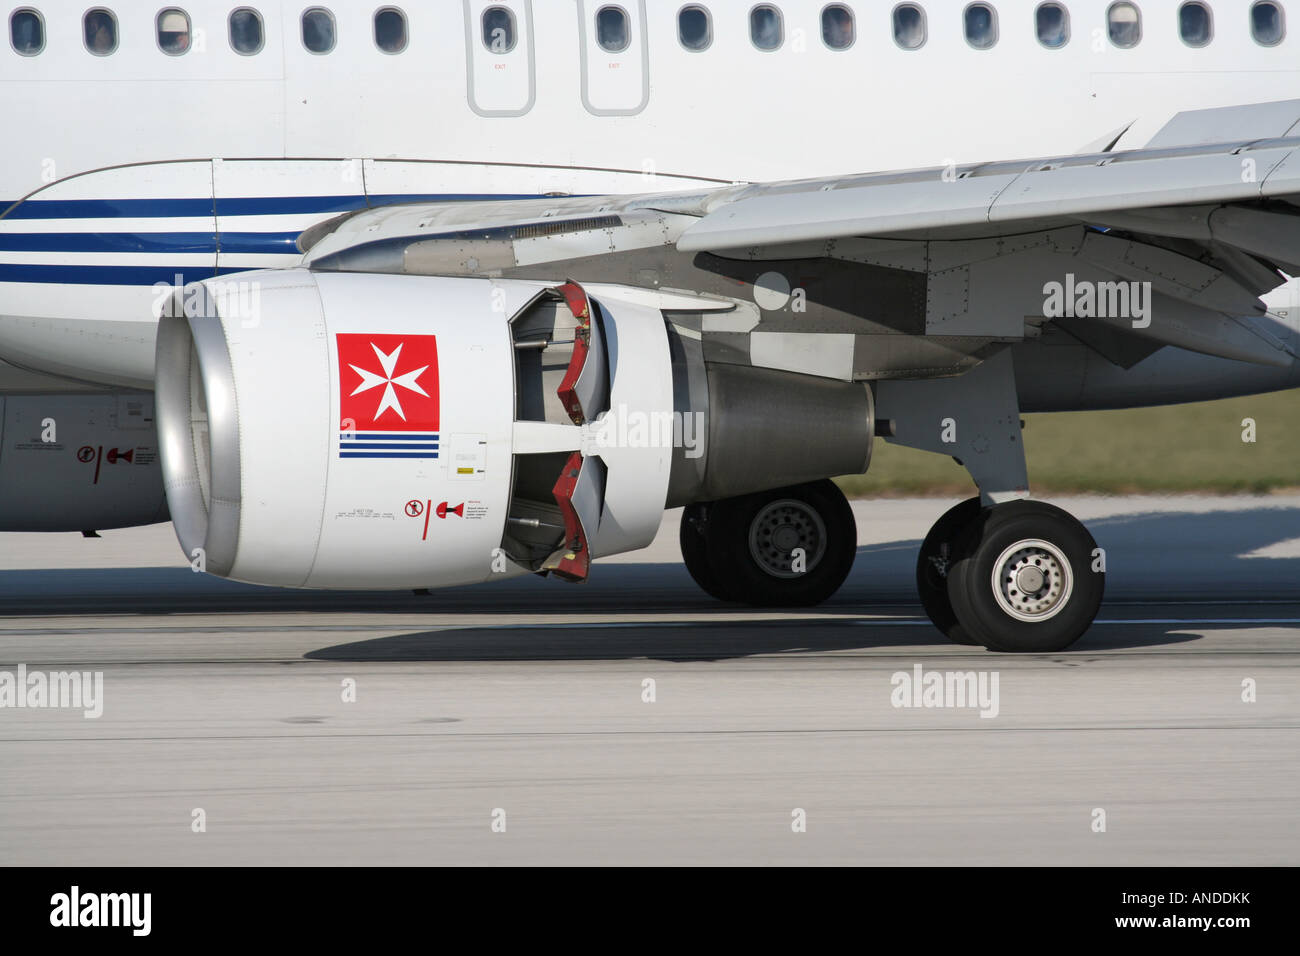 Close-up of a CFM56 turbofan engine nacelle on an Air Malta Airbus A320 jet plane with thrust reversers activated - Stock Image